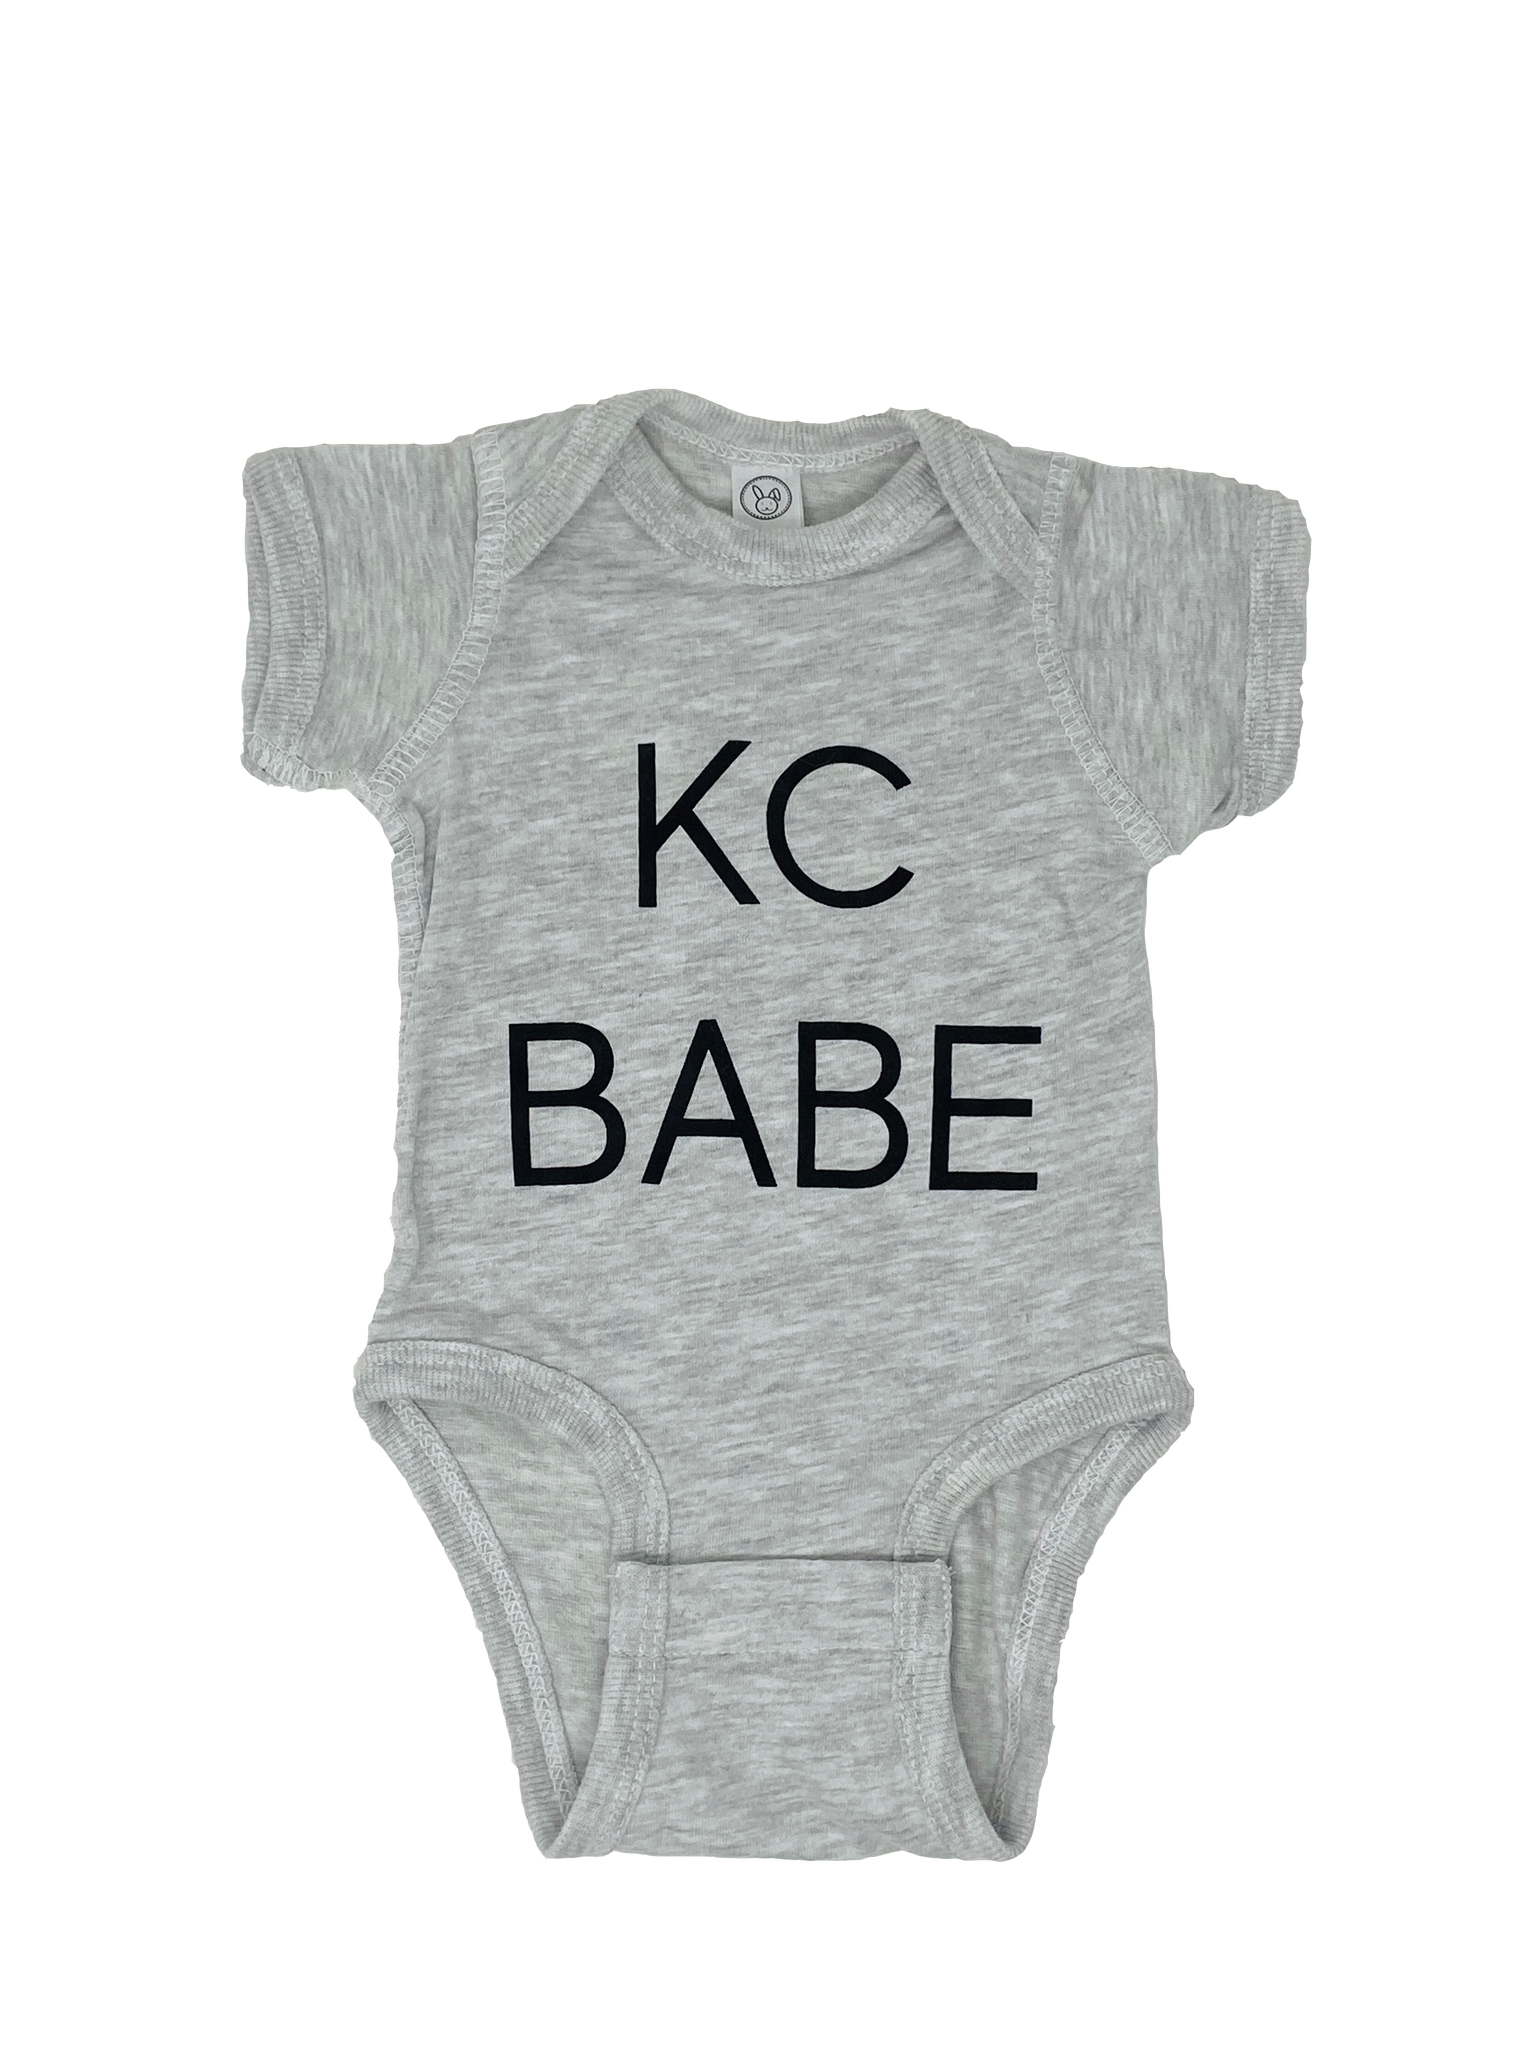 KC BABE // Light Gray Onesie